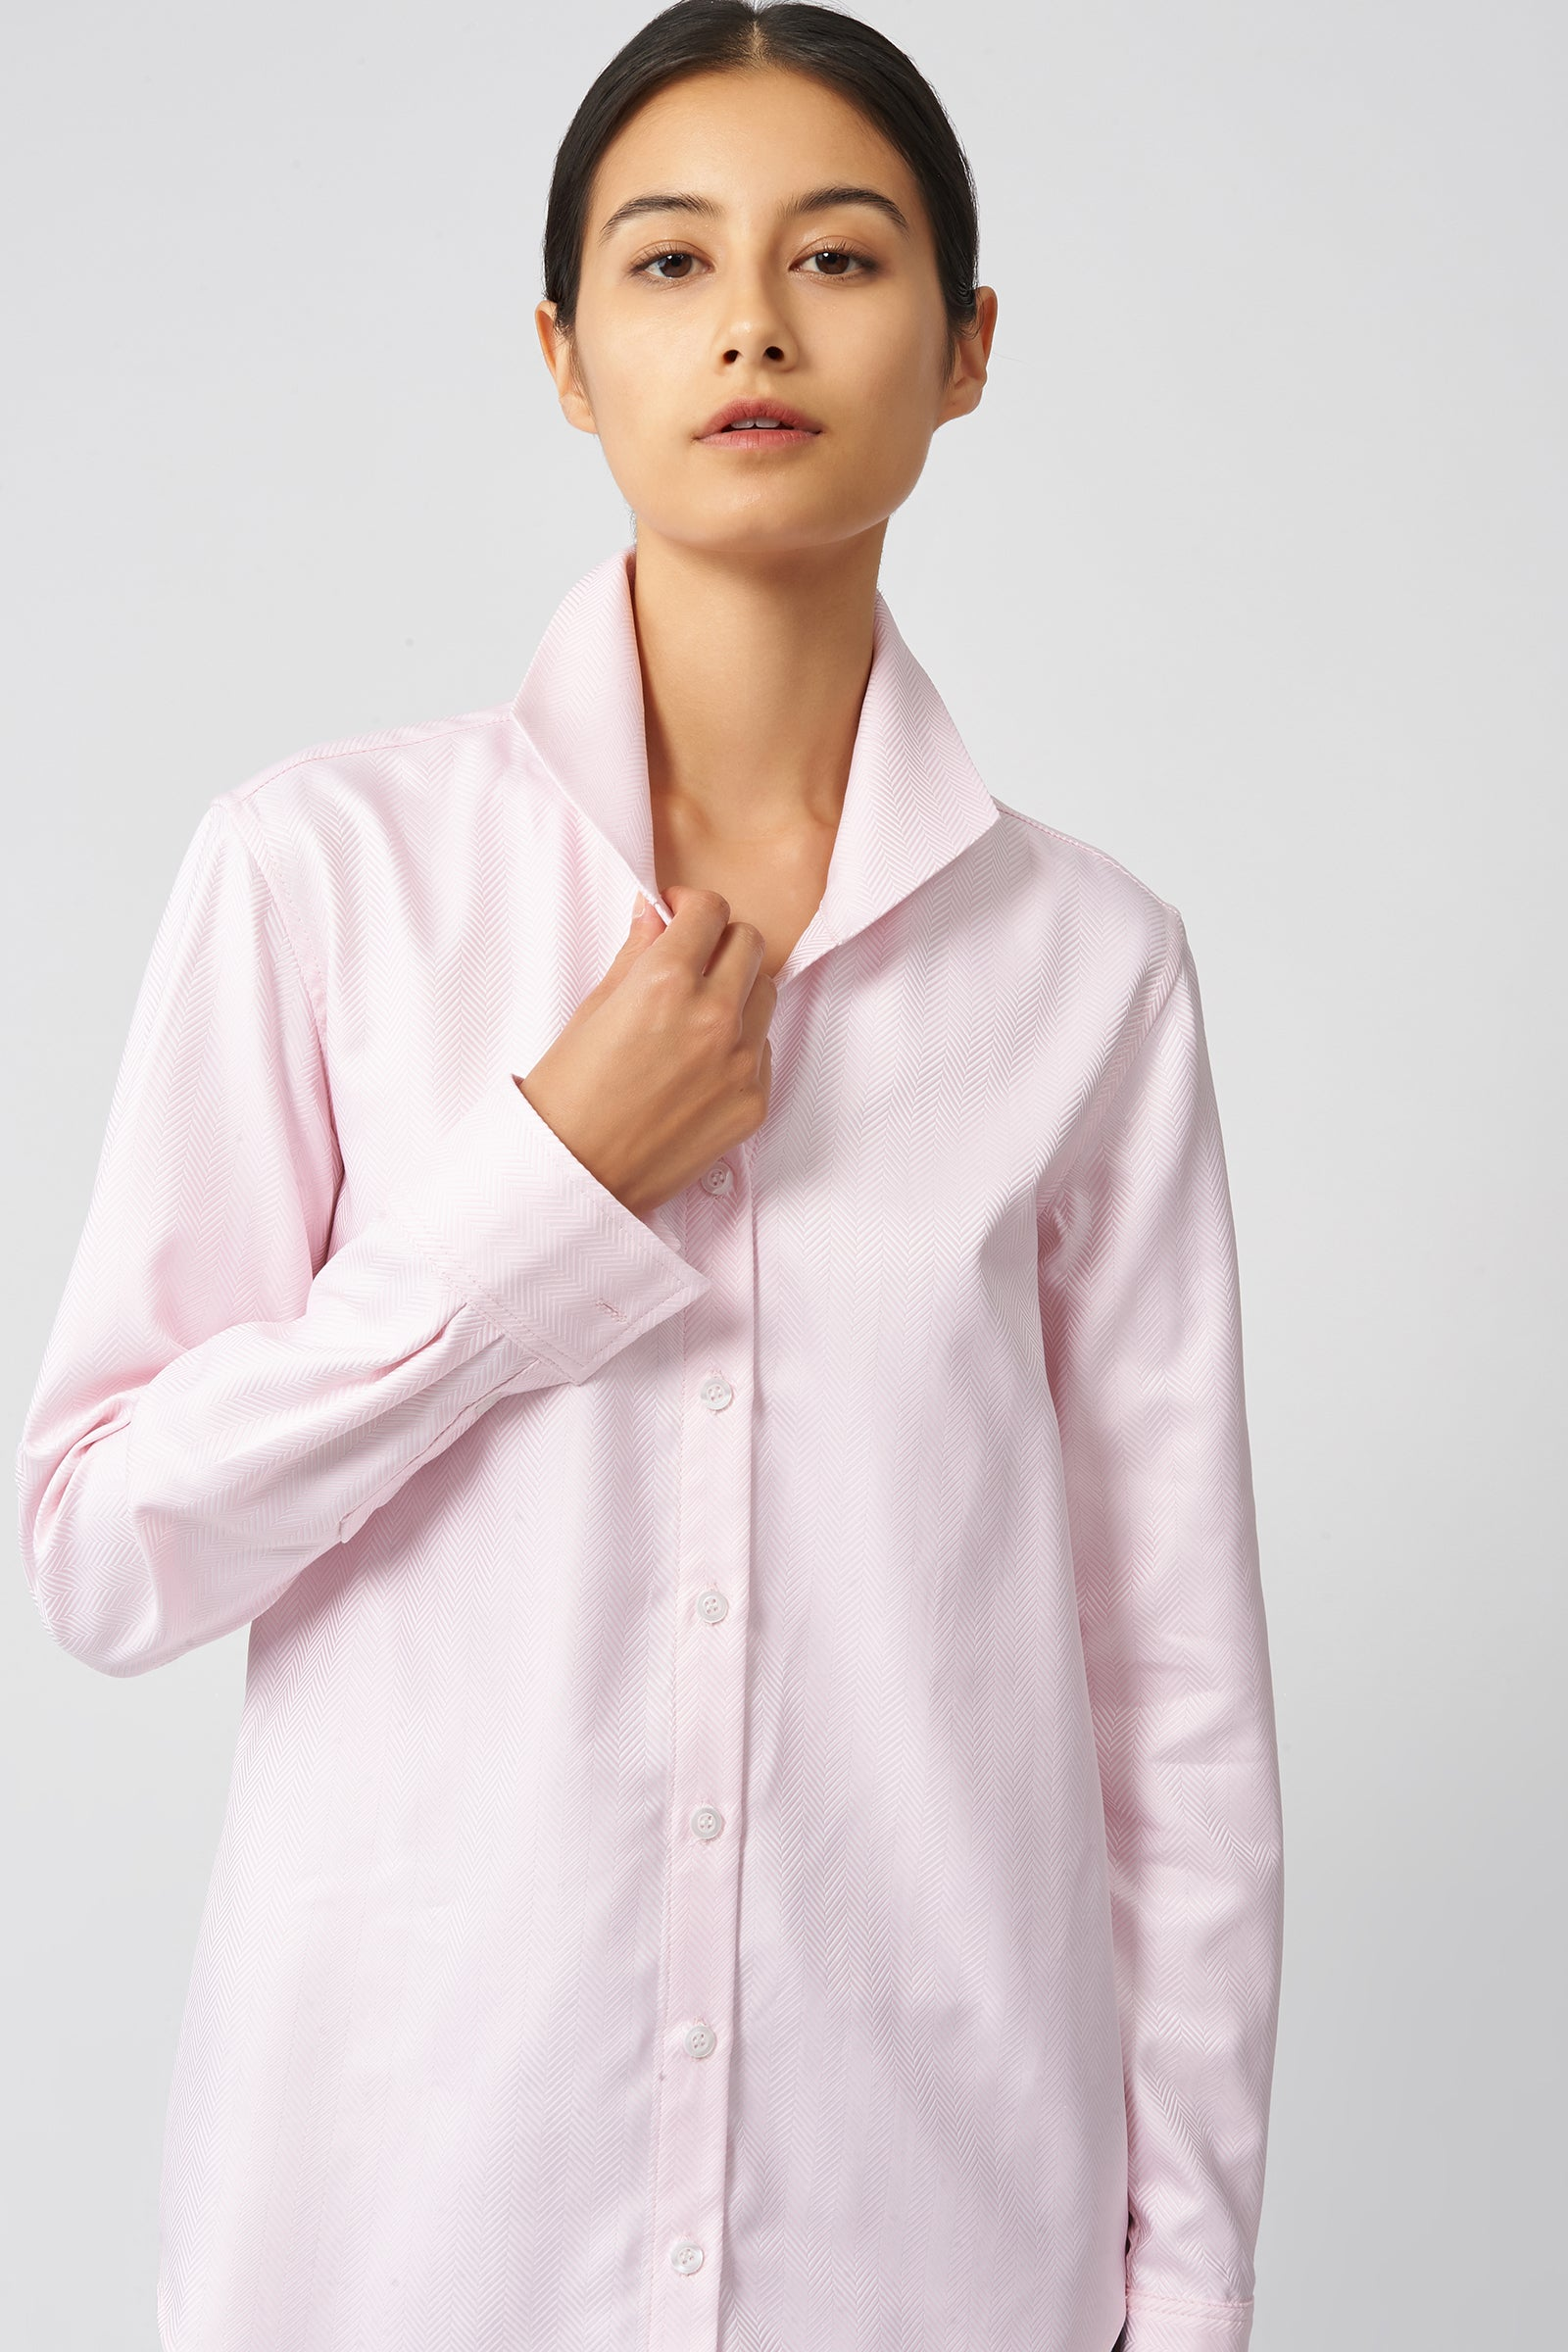 Kal Rieman Ginna Tailored Shirt in Pink Herringbone on Model Front Detail View